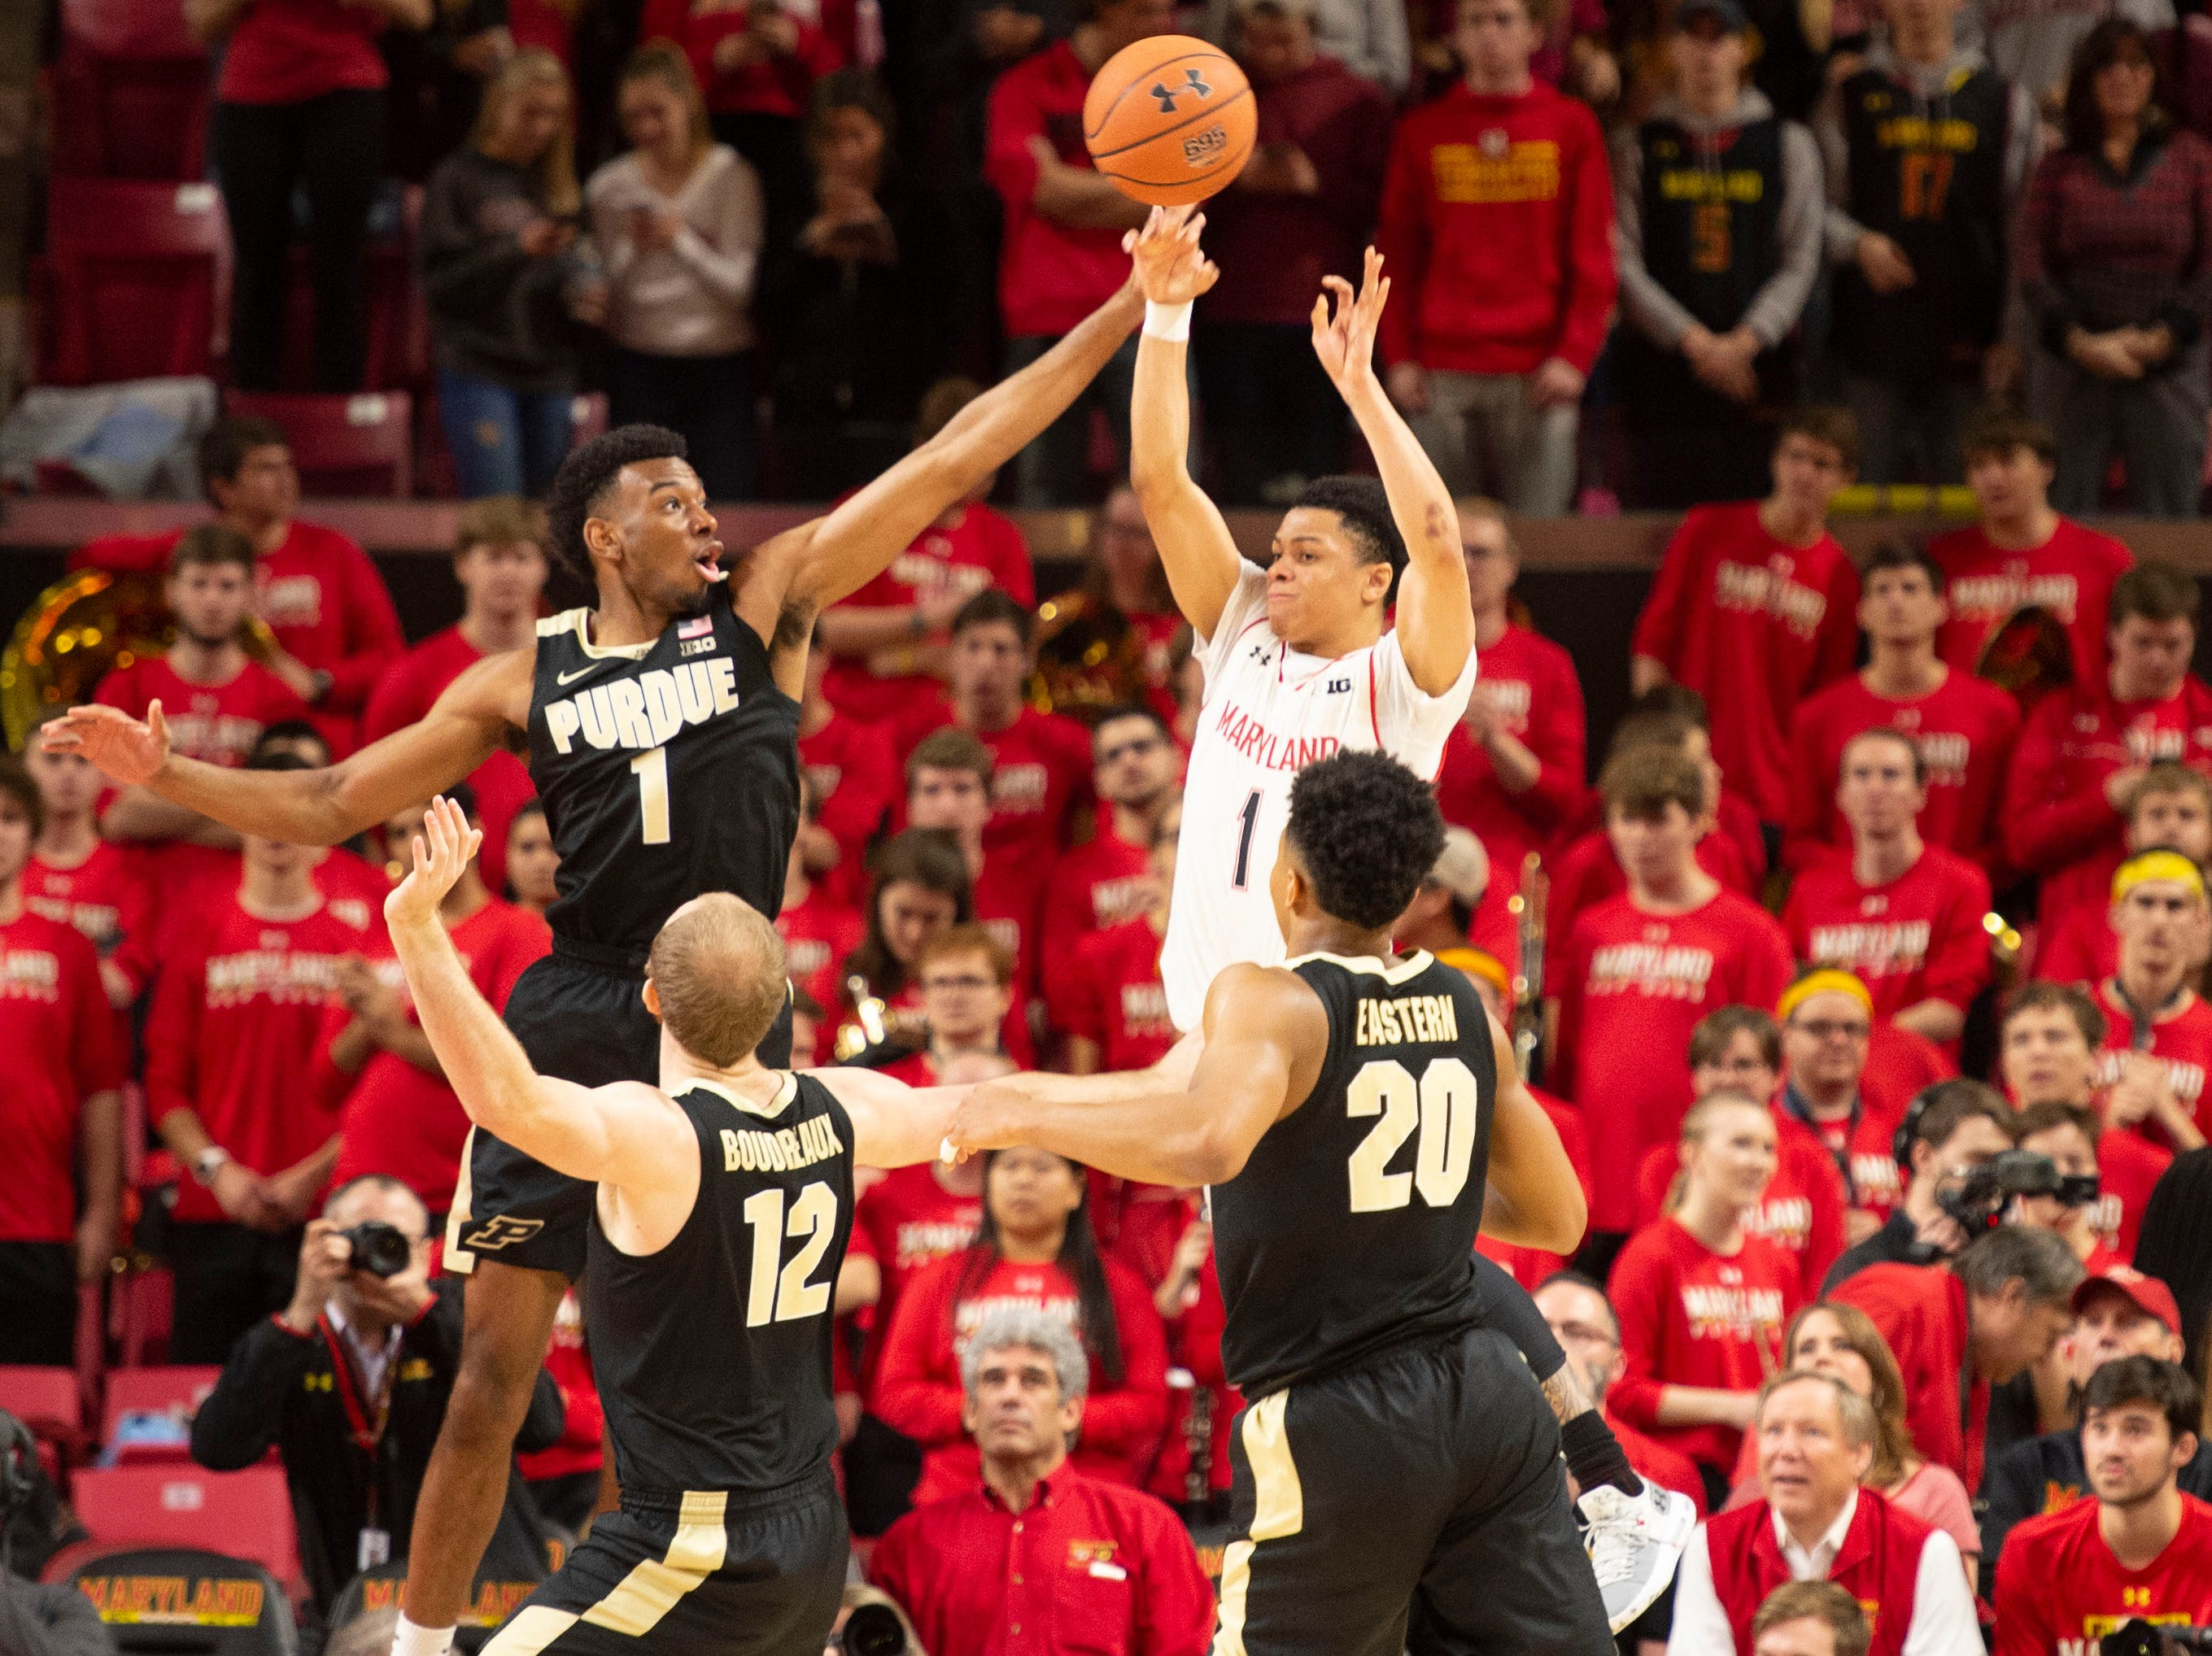 Feb 12, 2019; College Park, MD, USA; Maryland Terrapins guard Anthony Cowan Jr. (1) passes past the rect of Purdue Boilermakers forward Aaron Wheeler (1) during the first half at XFINITY Center. Mandatory Credit: Tommy Gilligan-USA TODAY Sports